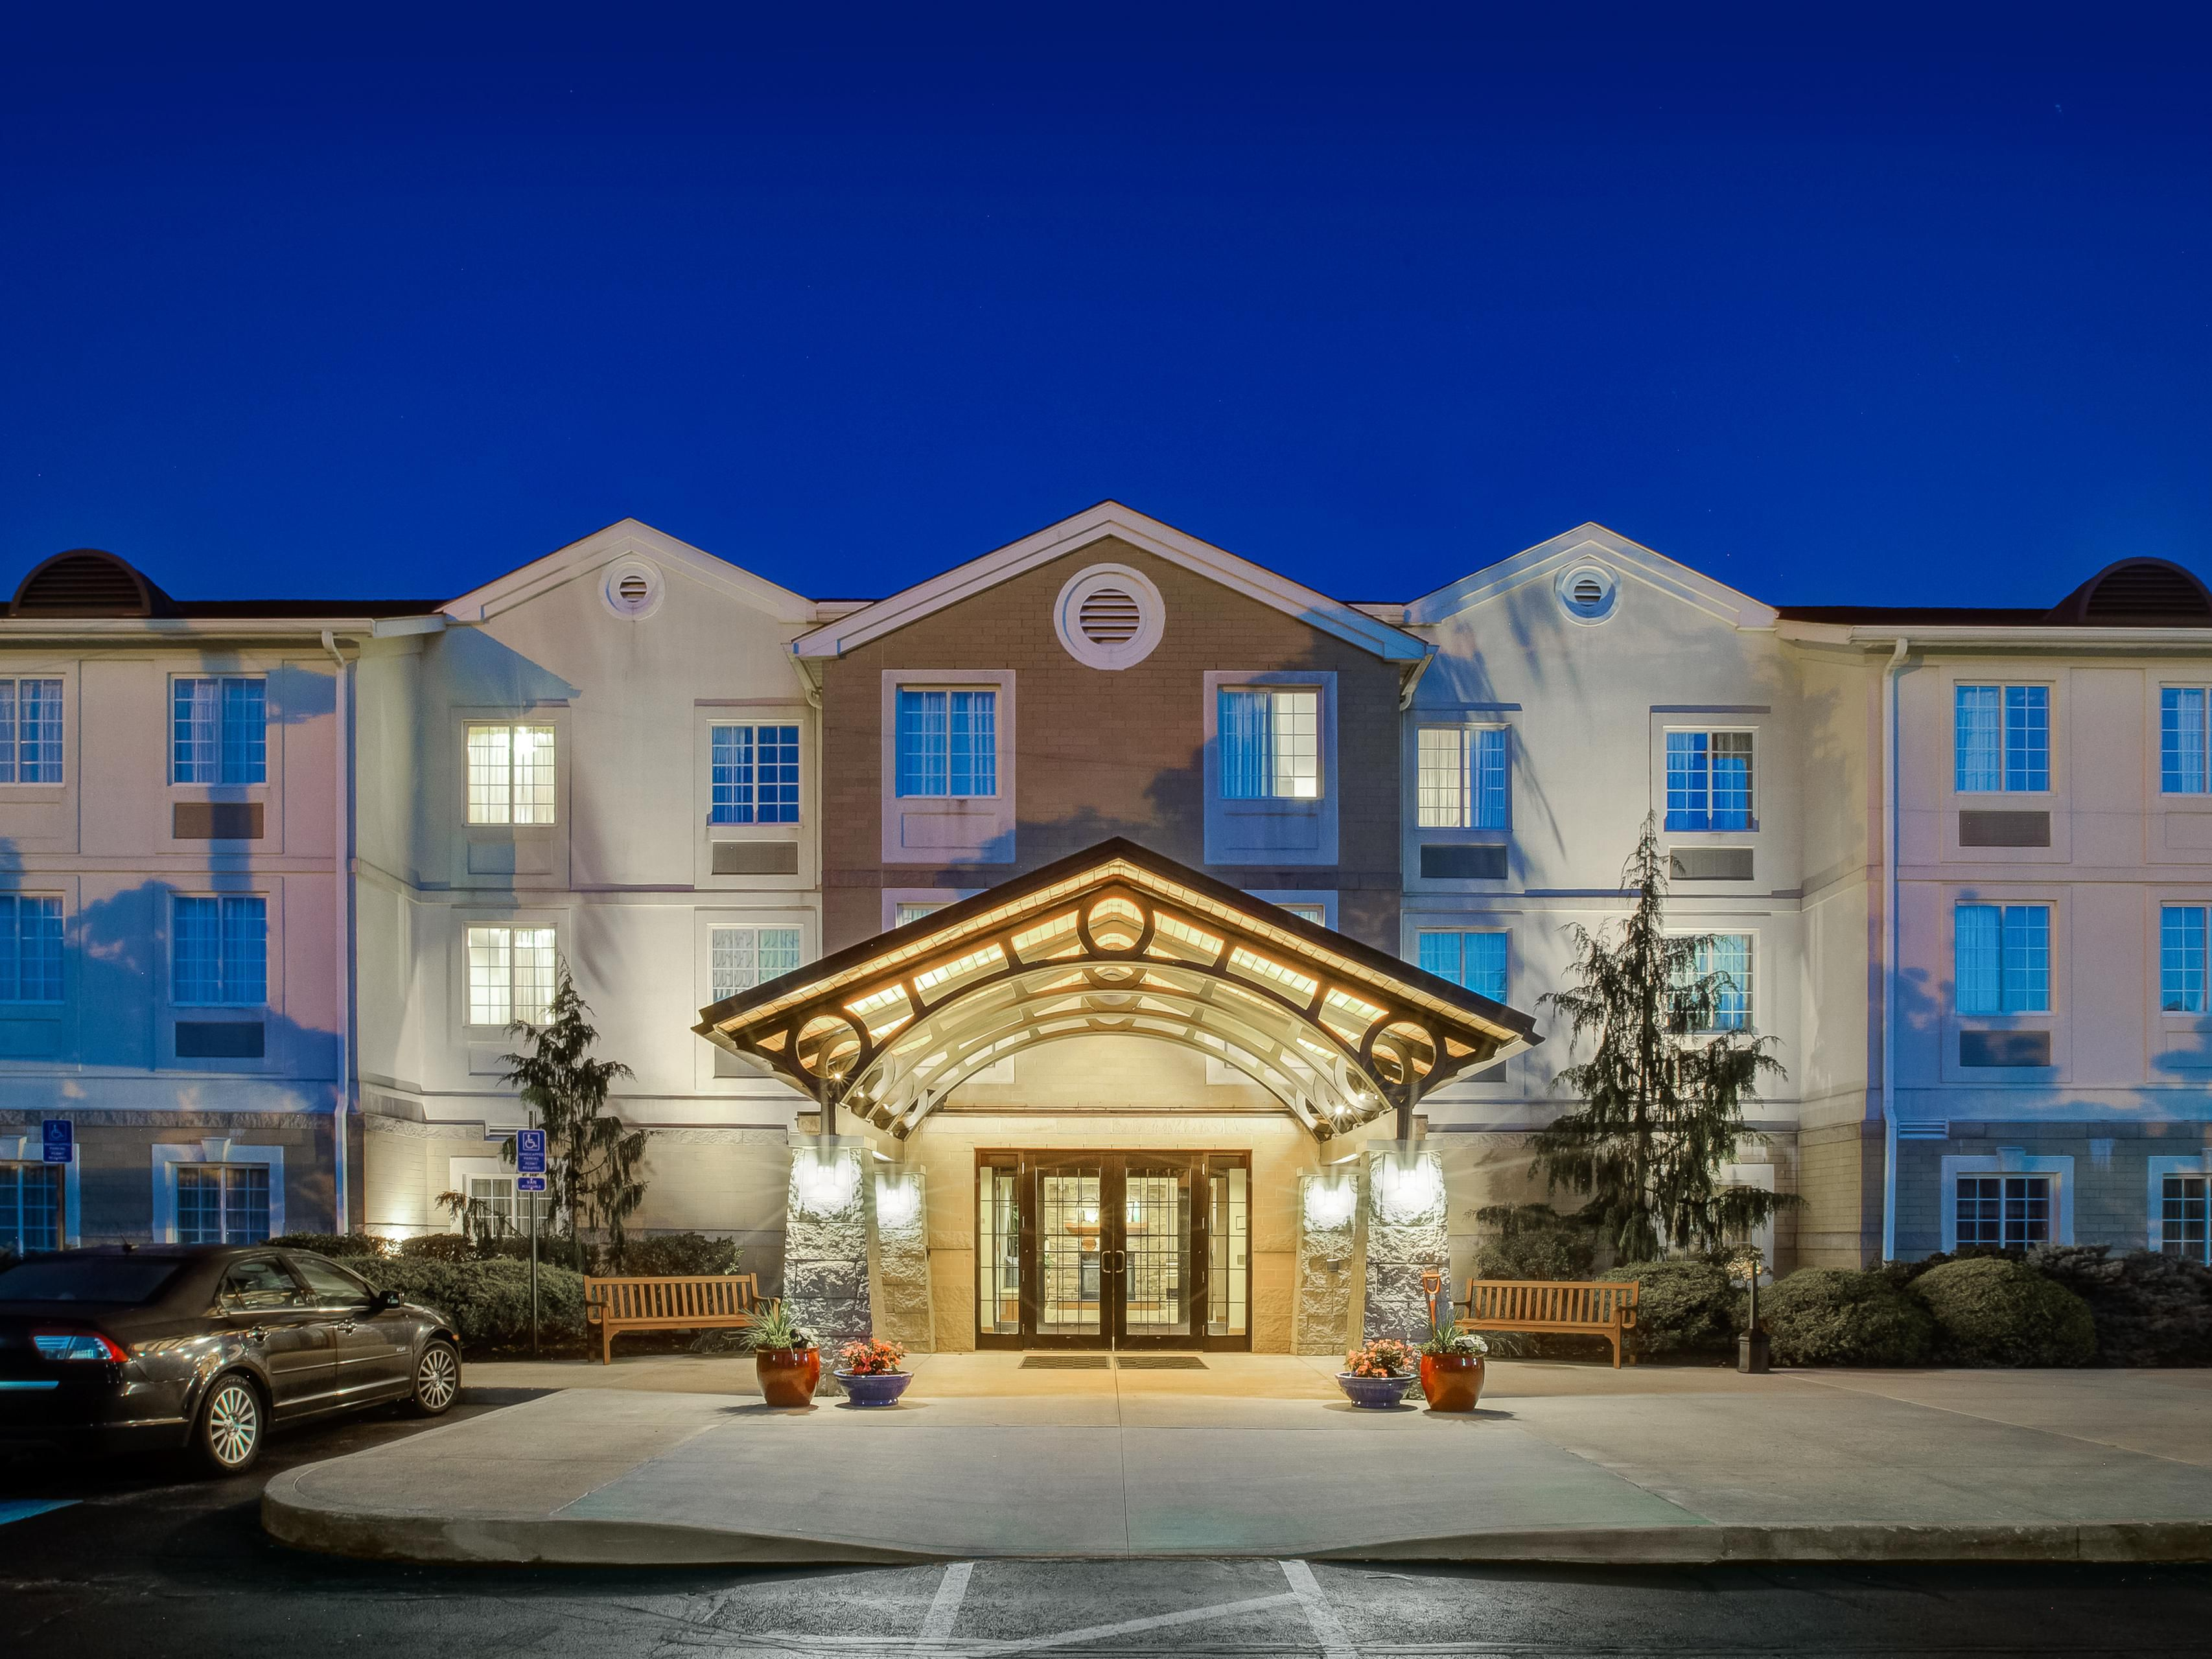 Mayfield Heights Hotels Staybridge Suites Cleveland Hts Beachwd Extended Stay Hotel In Ohio